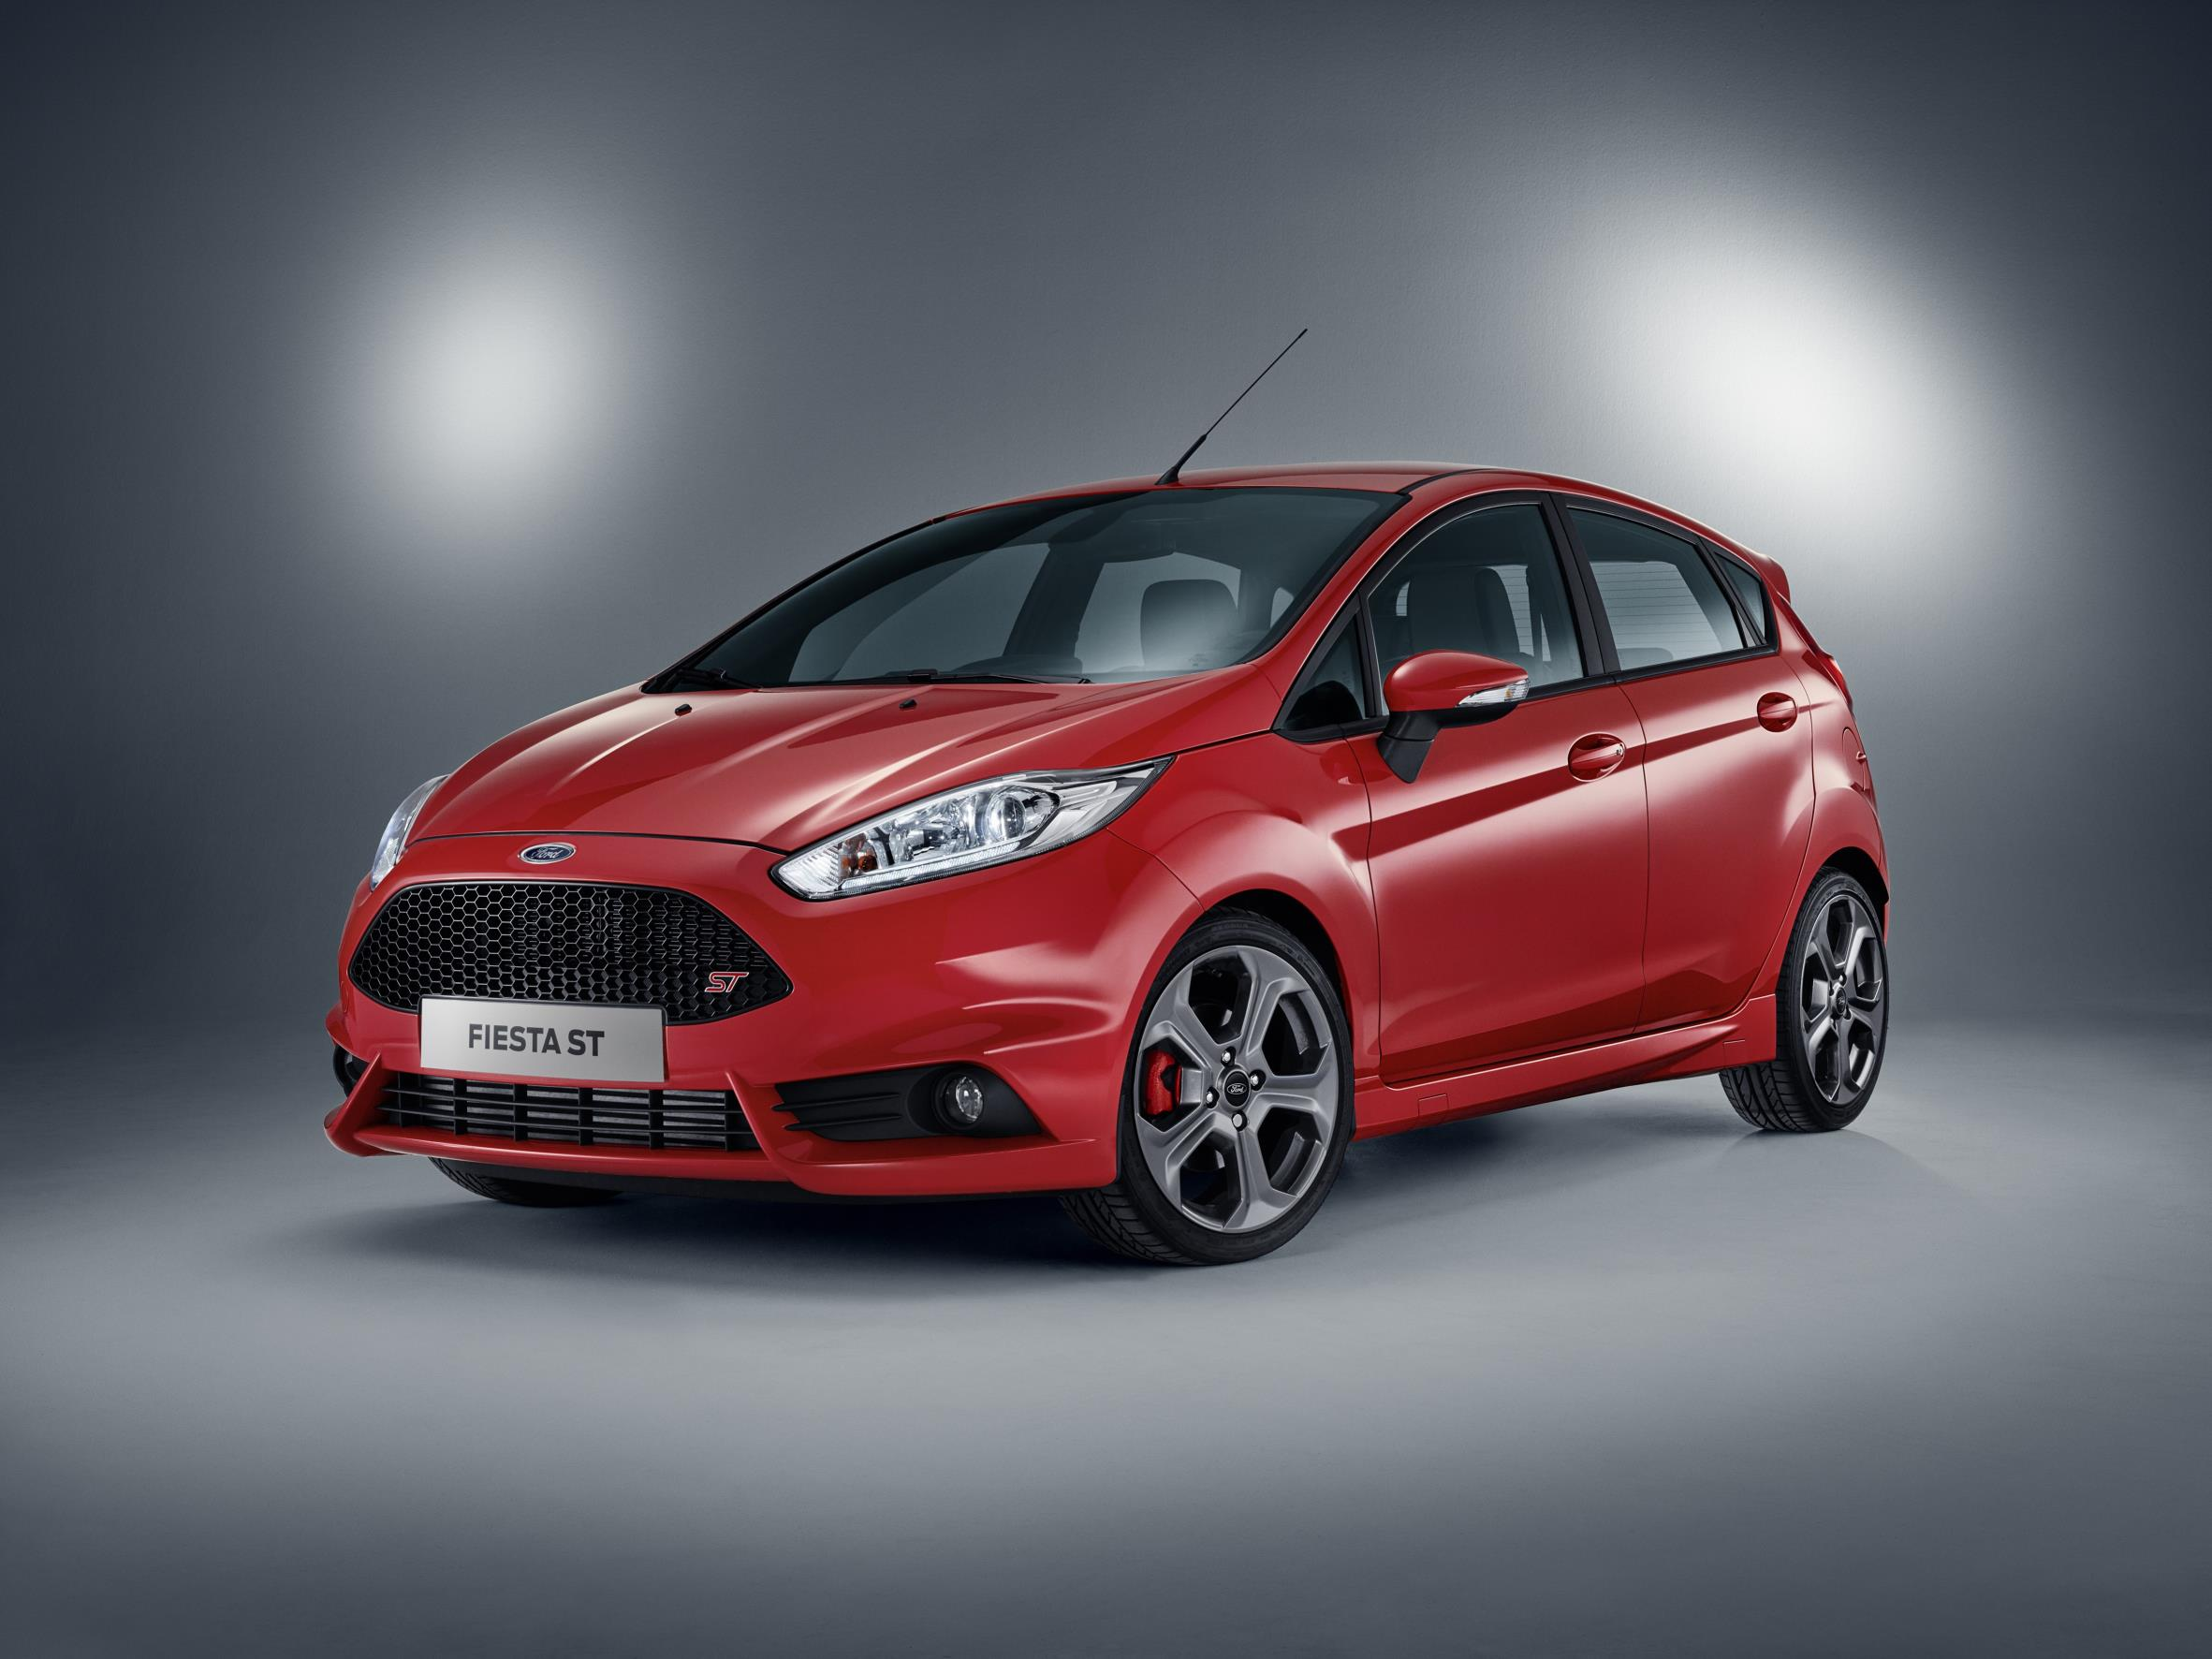 2017 ford fiesta st five door introduced in europe autoevolution. Black Bedroom Furniture Sets. Home Design Ideas